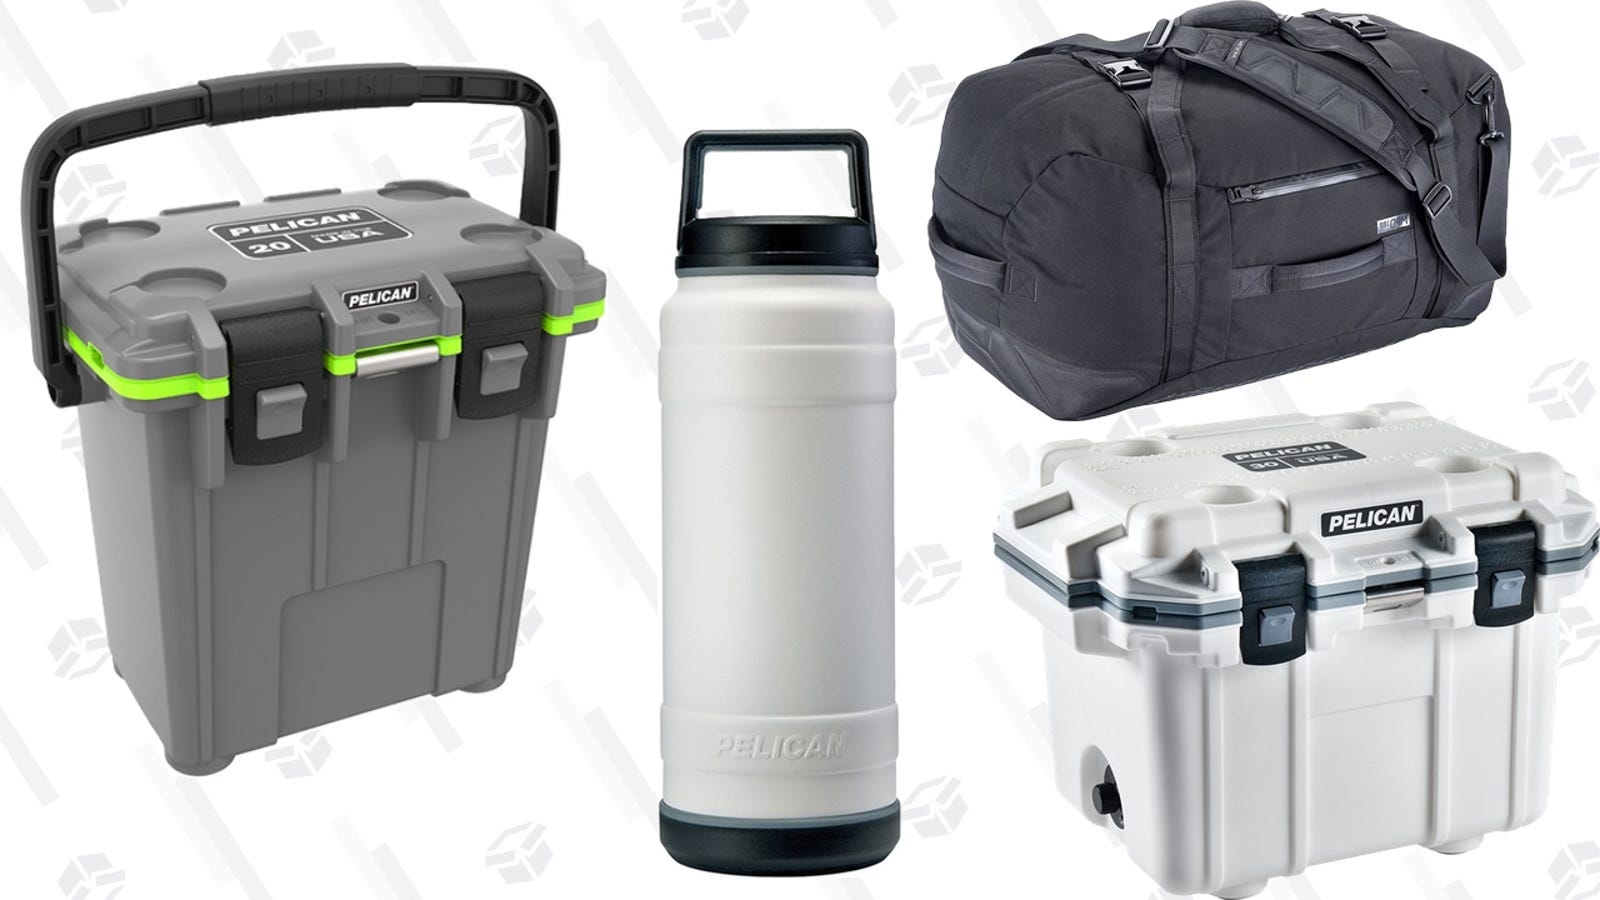 Keep Ice Frozen For Over a Week With These Discounted Pelican Coolers, Plus More Gear on Sale